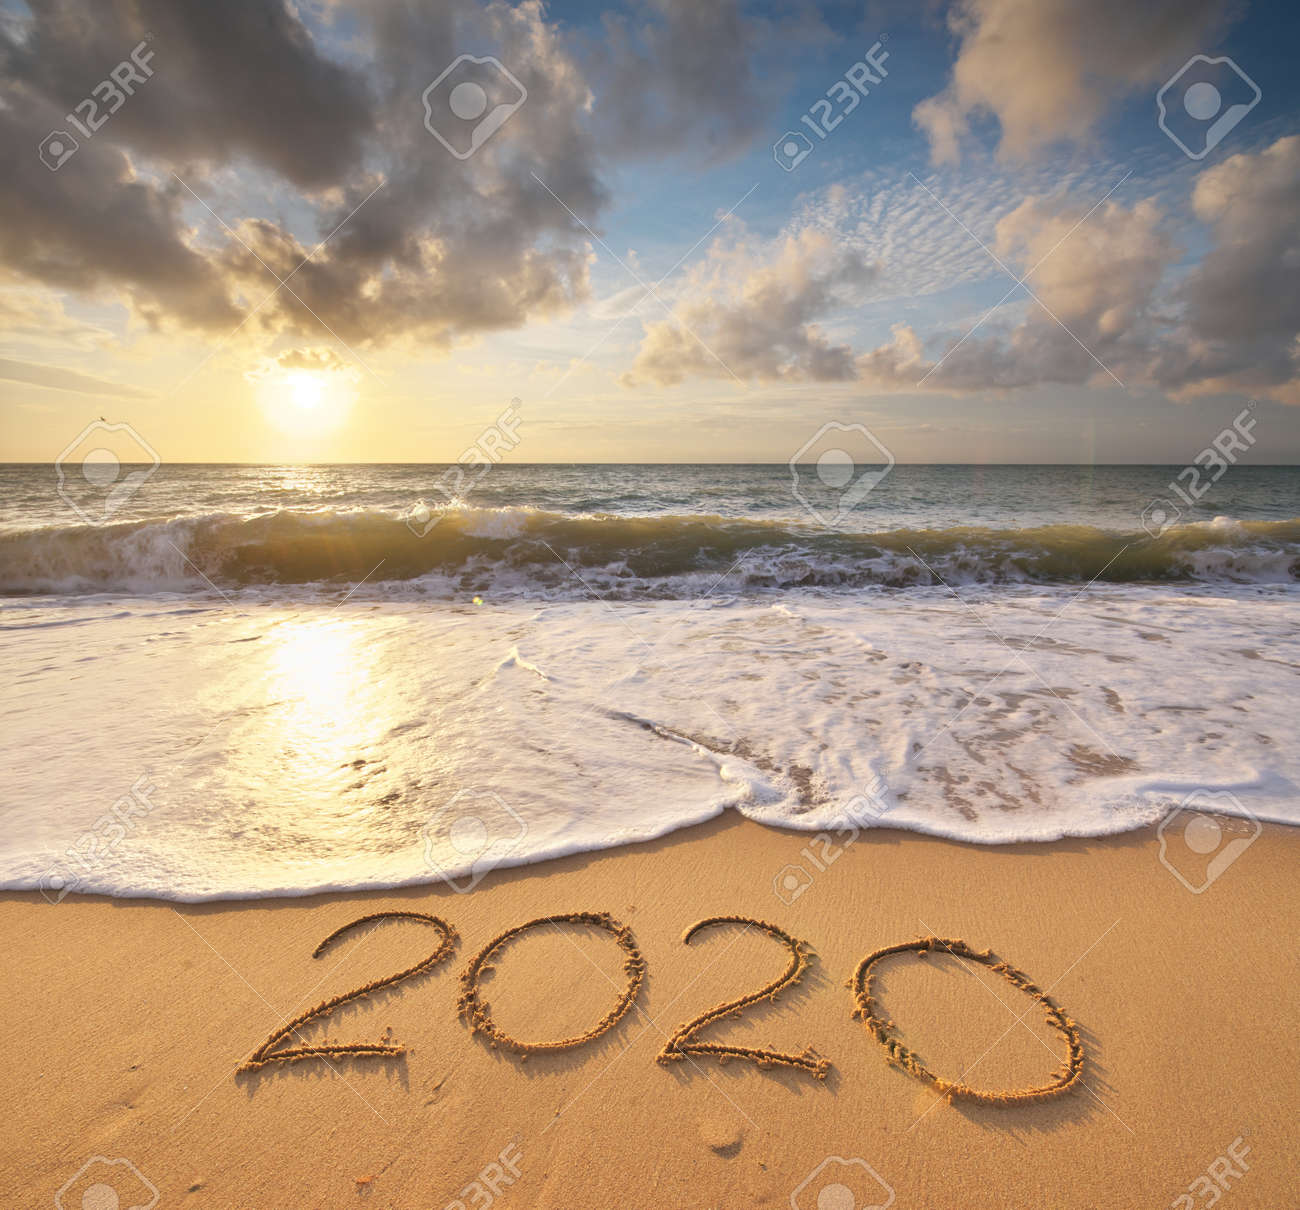 2020 year on the sea shore during sunset. Element of design. - 135152677